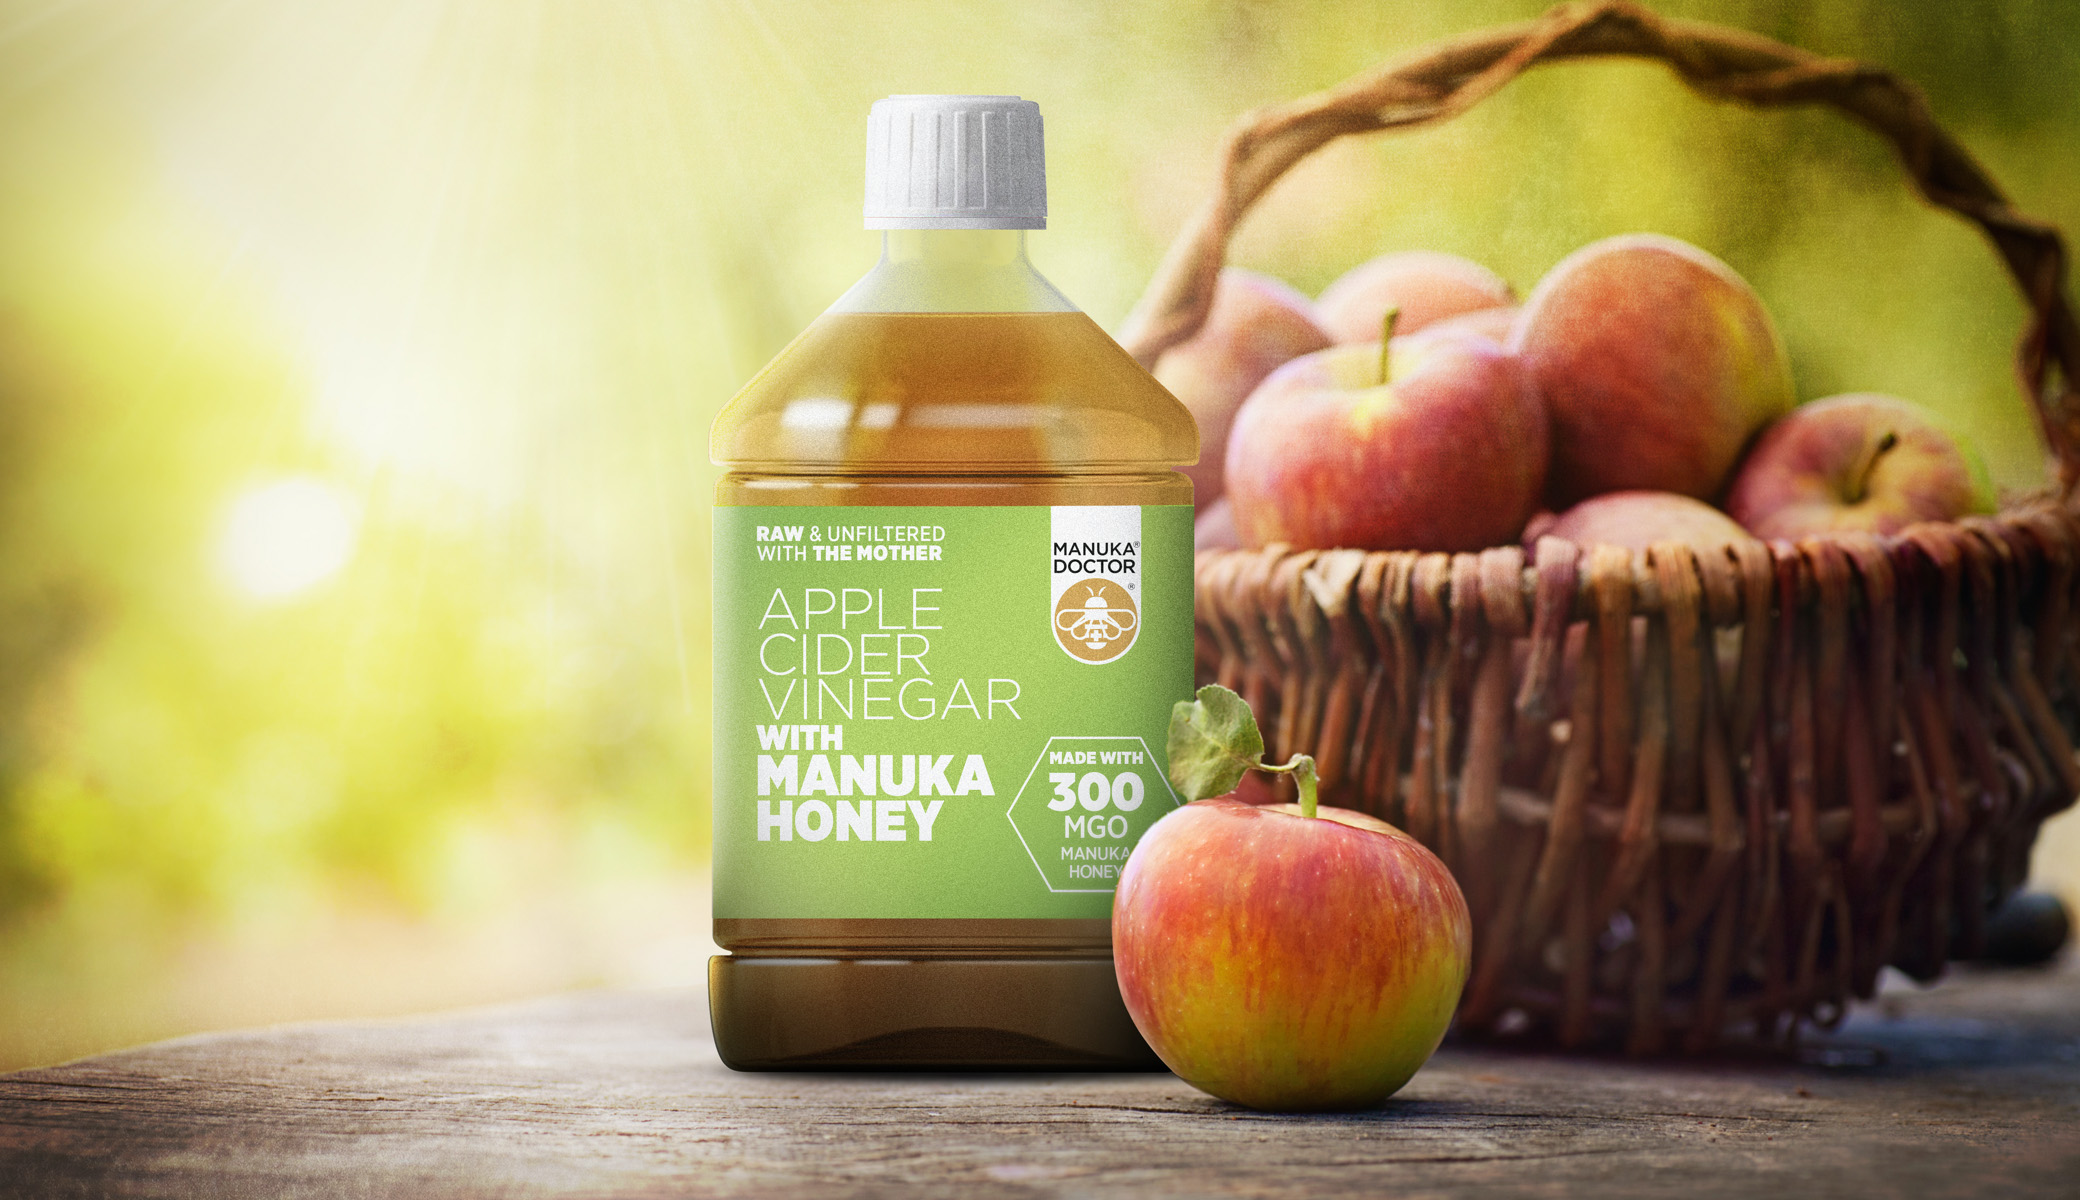 Manuka Doctor Apple Cider Vinegar